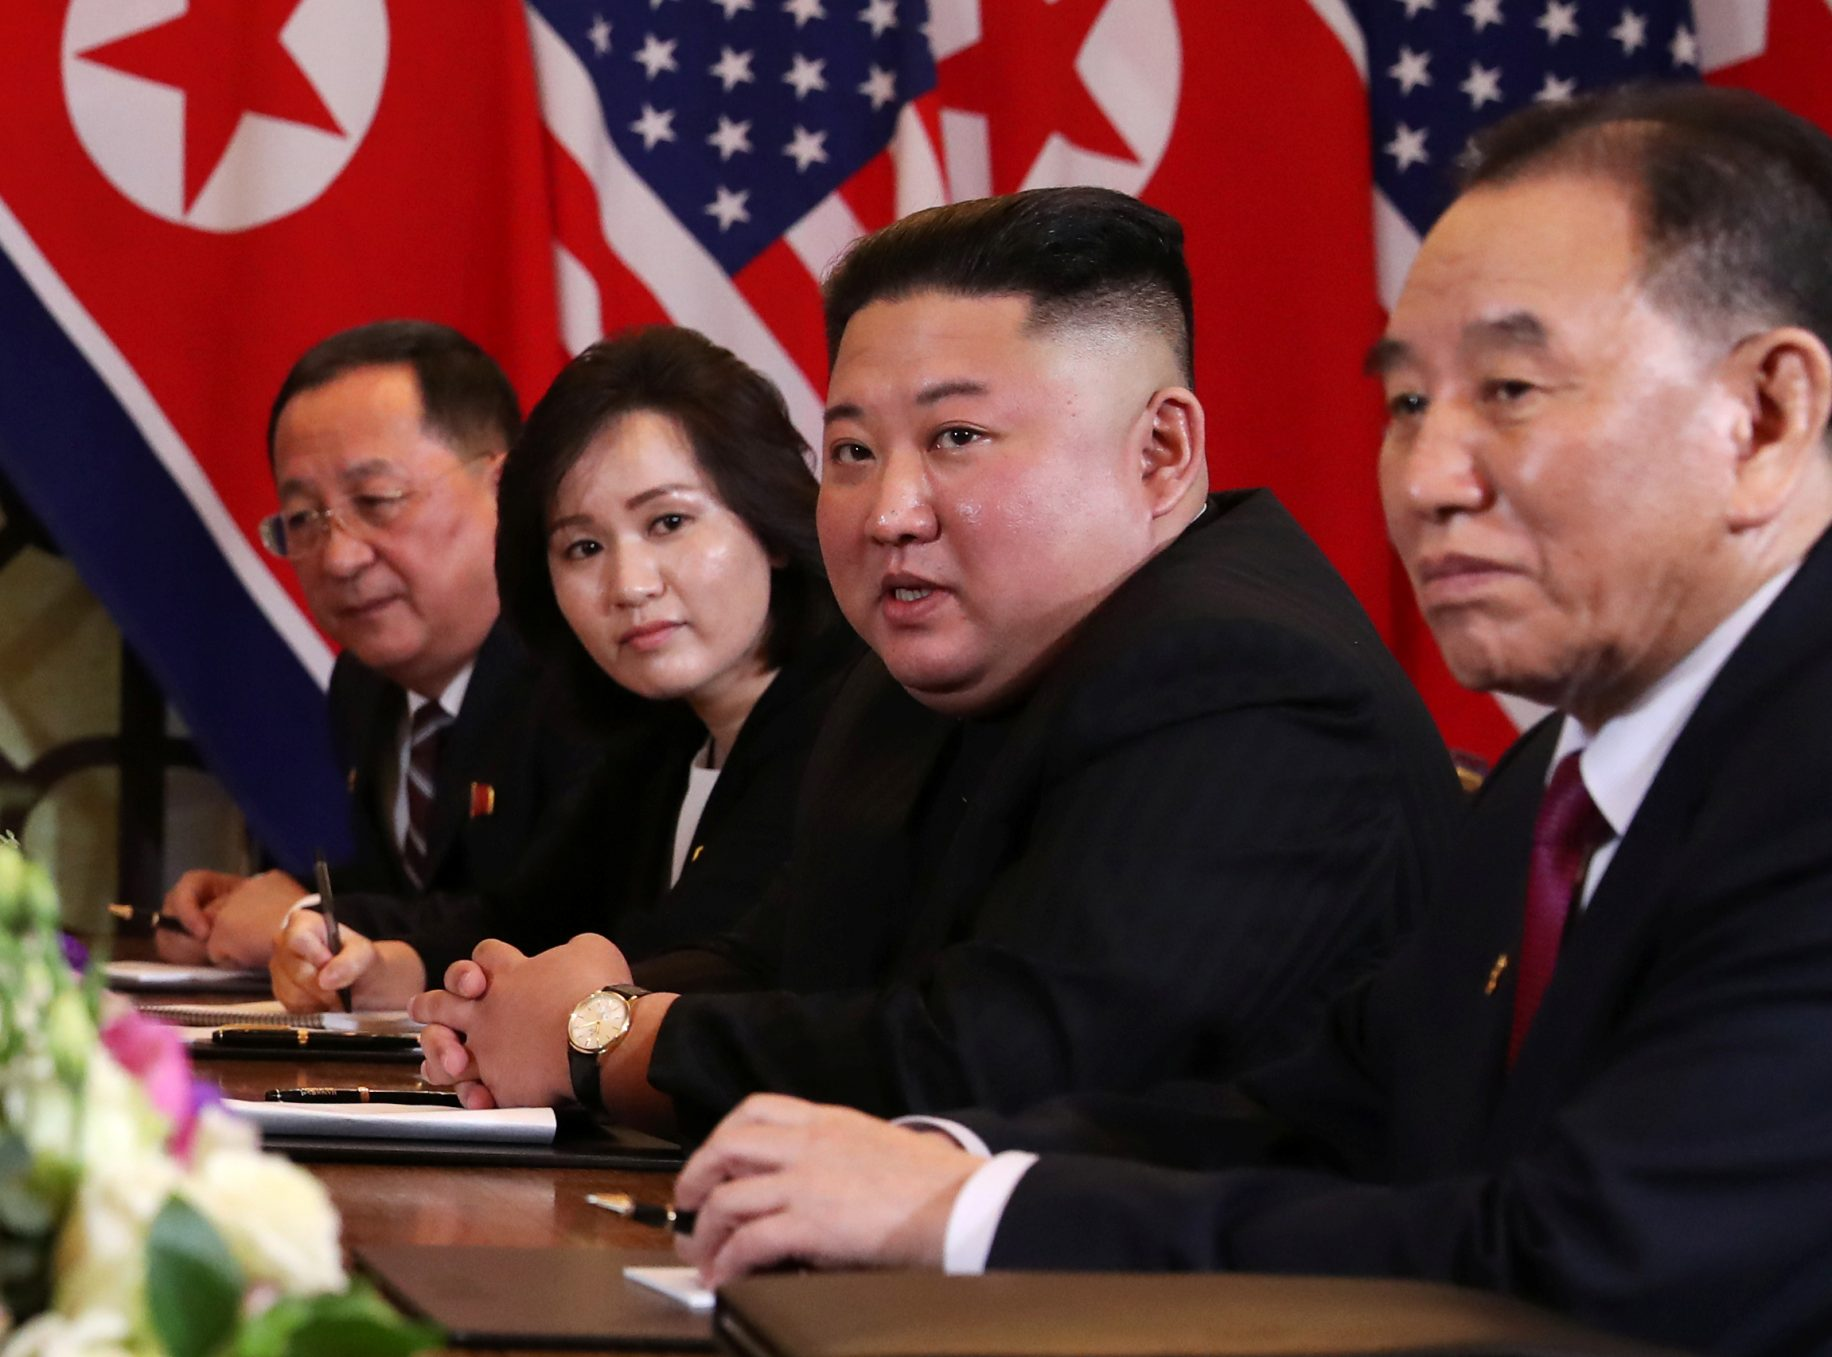 Authorities turn blind eye as conditions worsen in North Korean labor camps